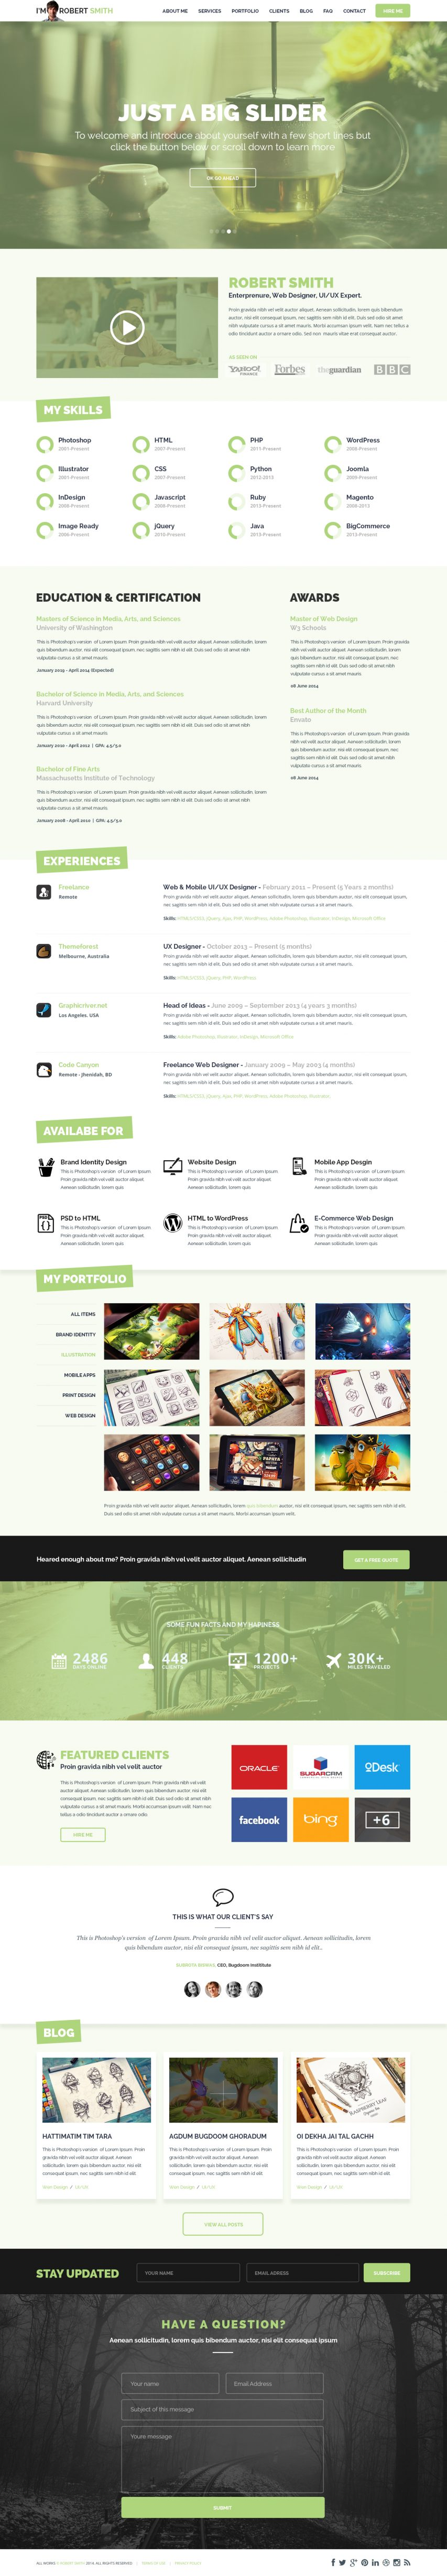 One Page Resume Website